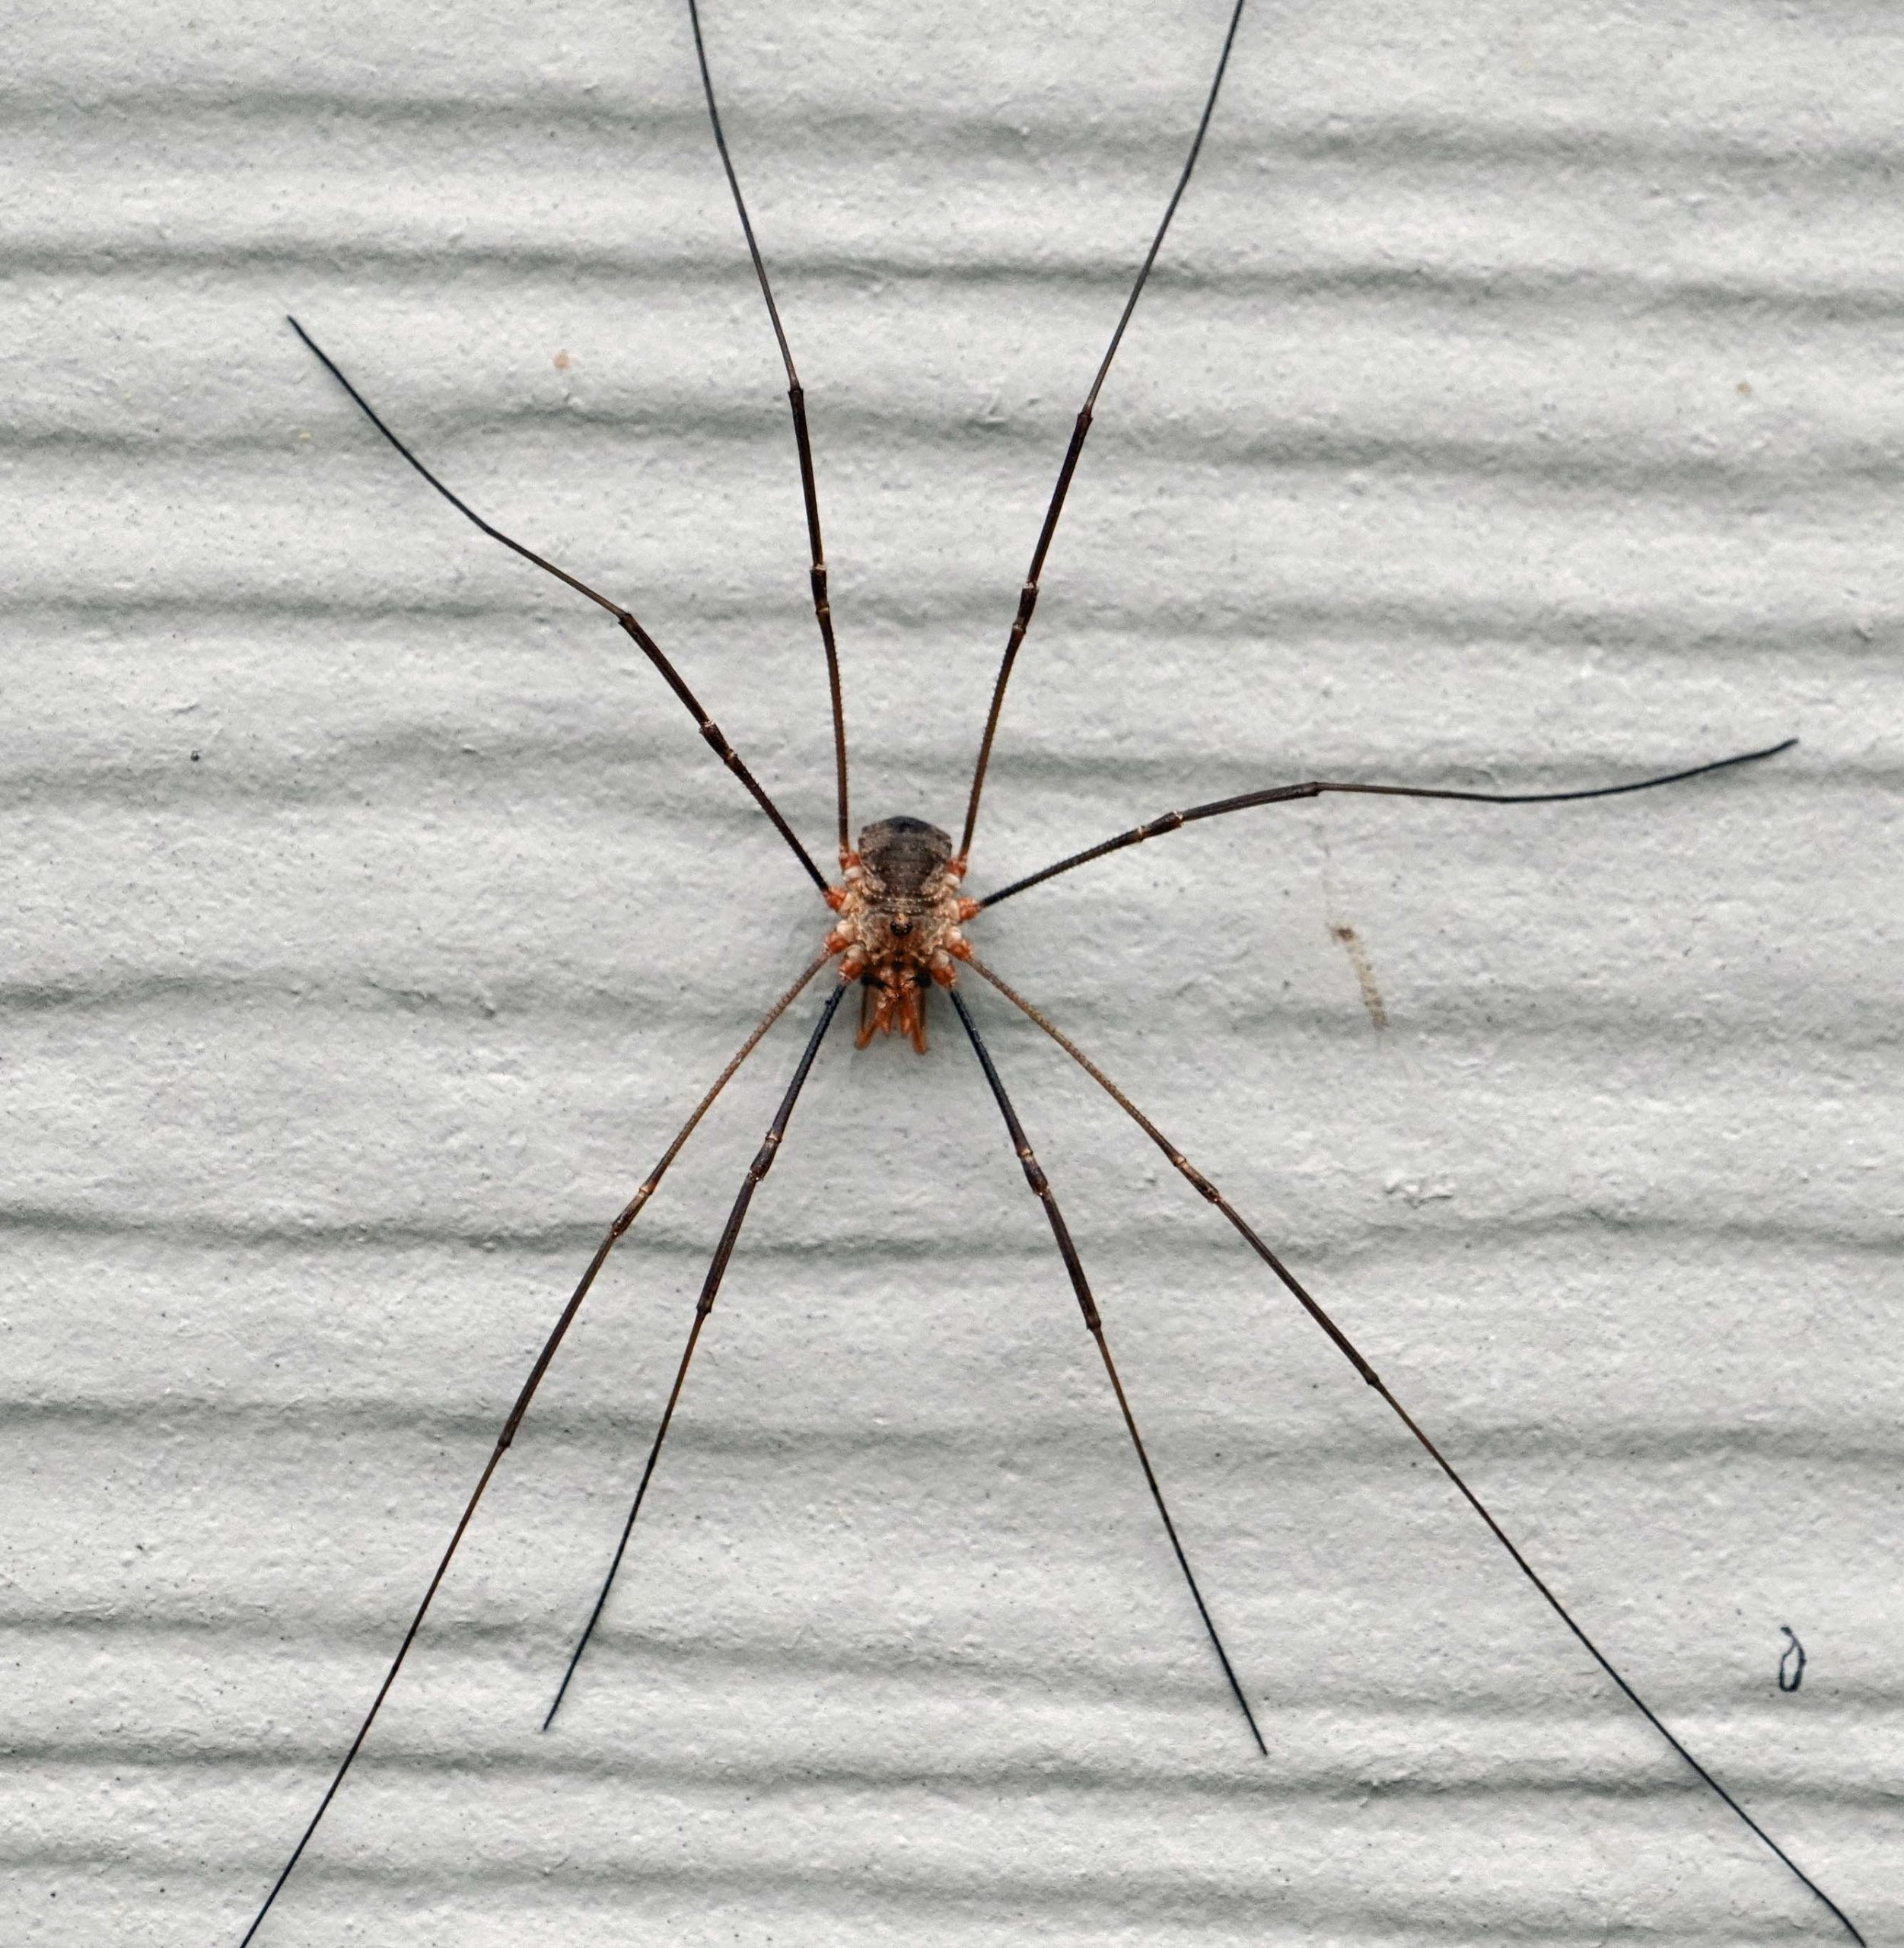 Brown Harvestman